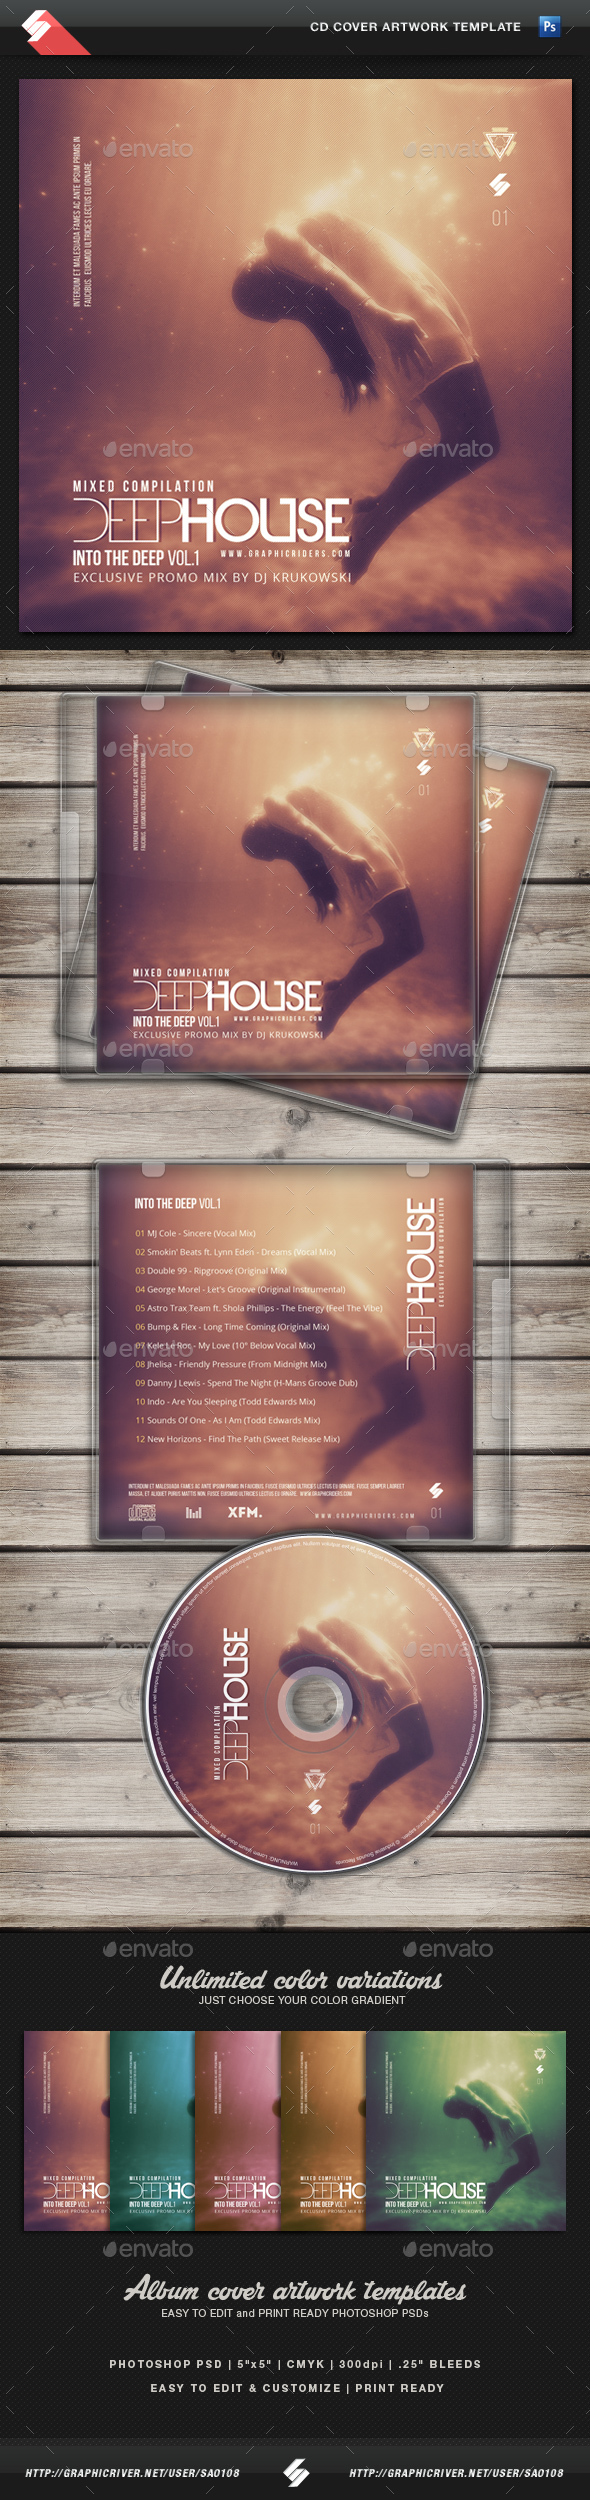 Deep House Mix CD Cover Artwork Template